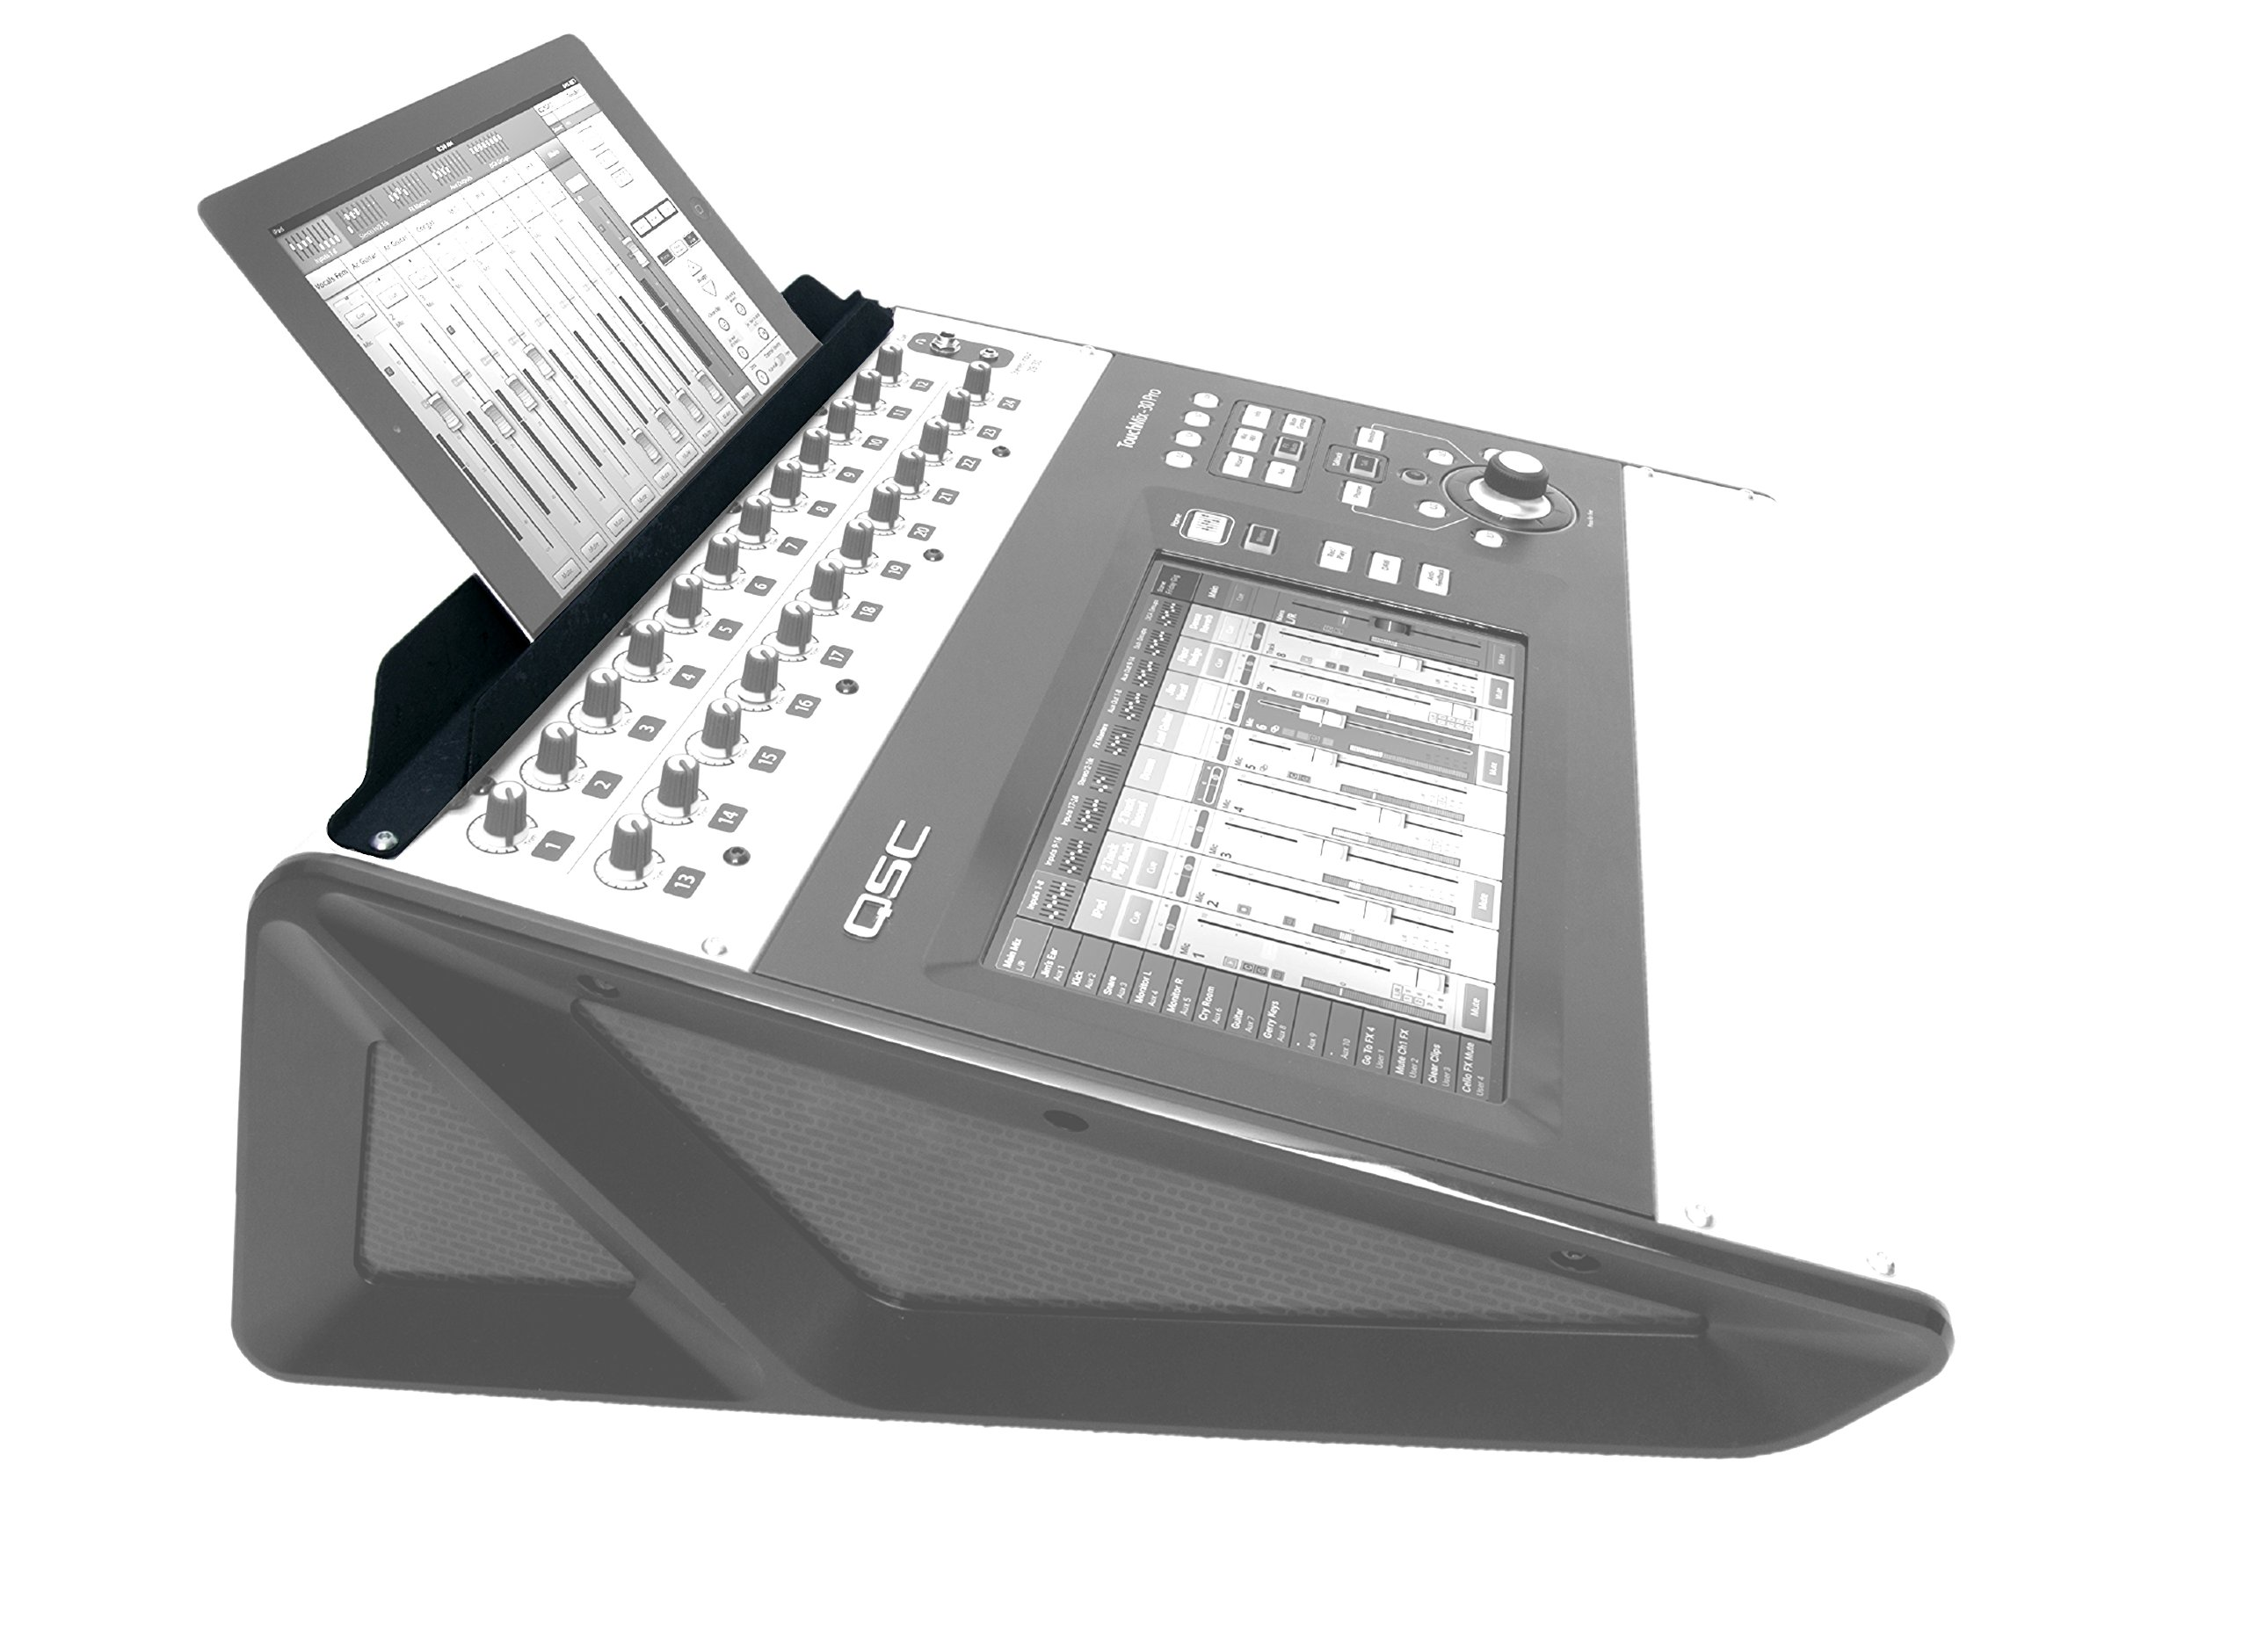 QSC TS-1 TouchMix-30 Tablet Support Stand